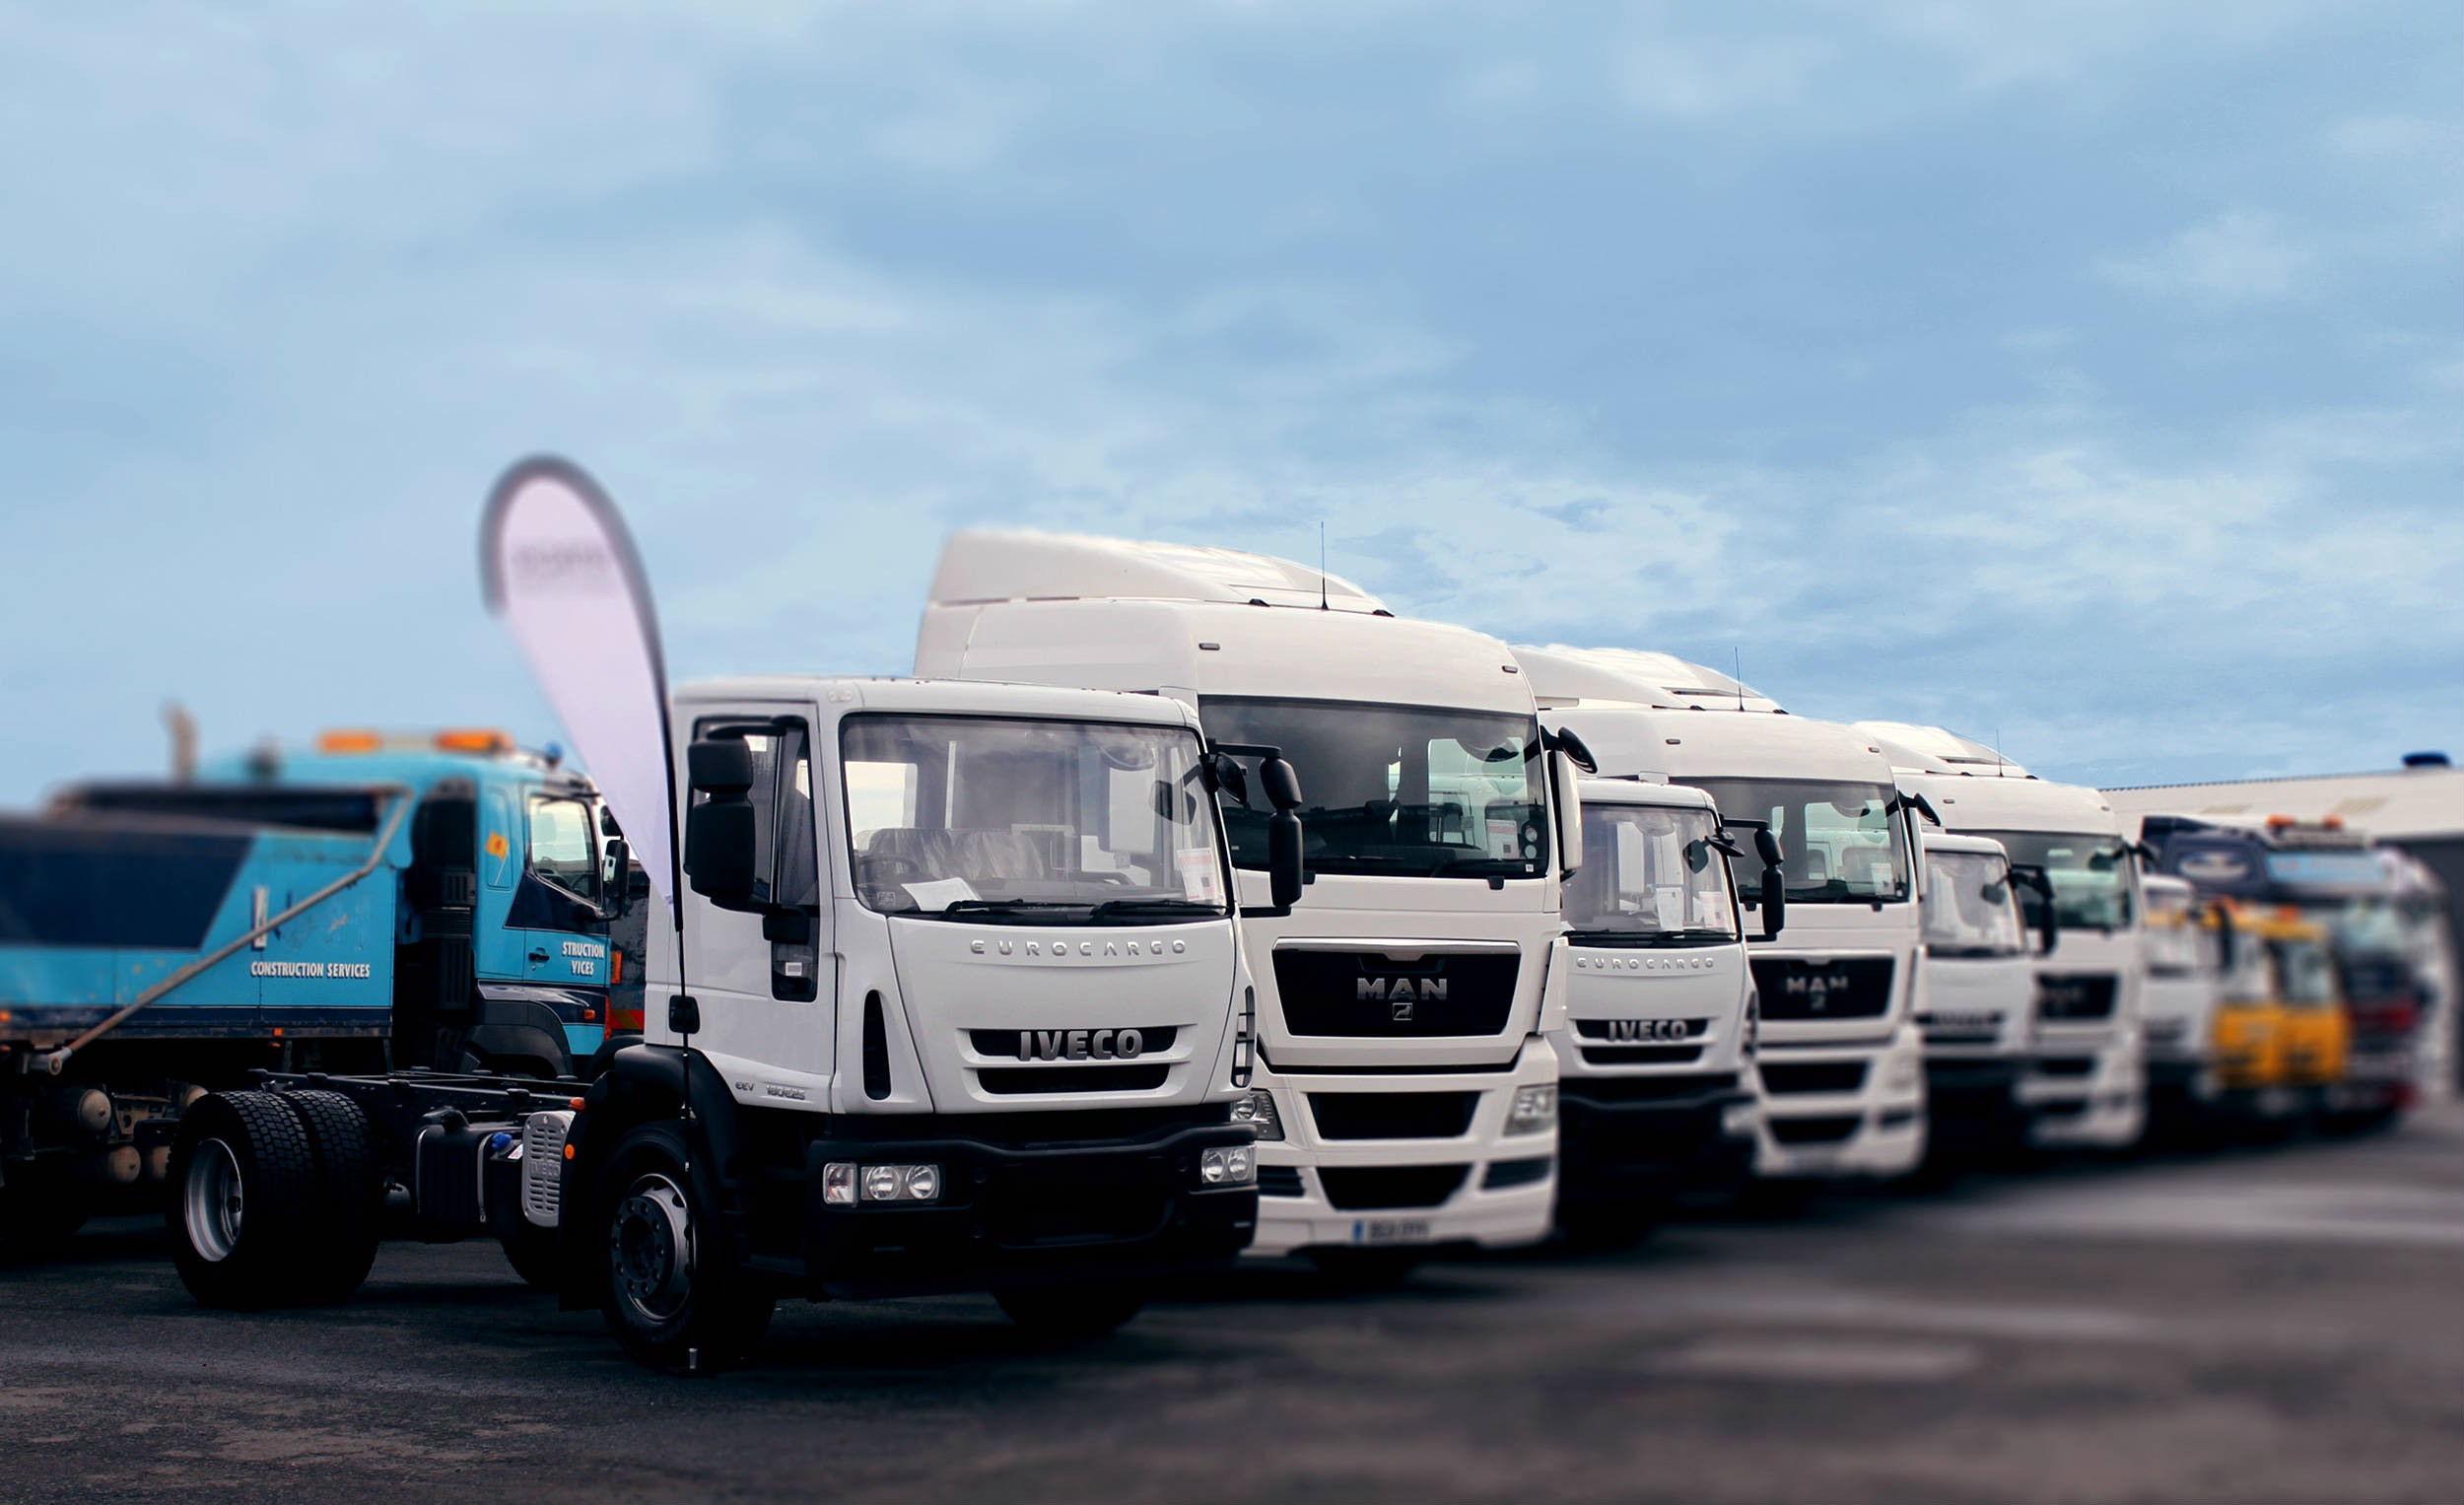 Commercial vehicles: Trucks lined up for auction